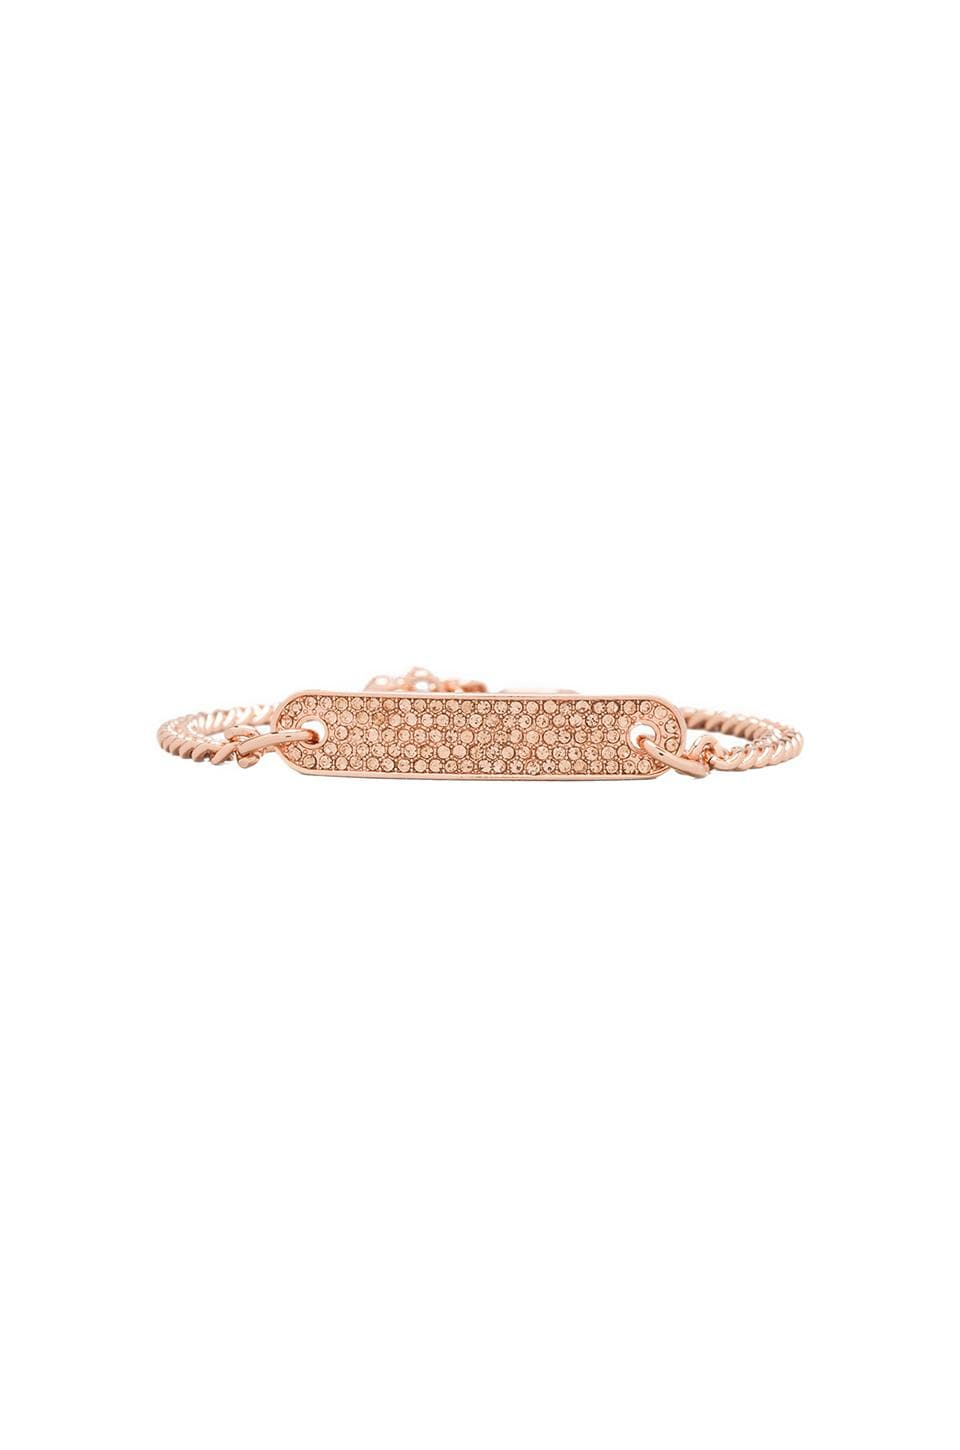 Juicy Couture ID Bracelet in Rose Gold